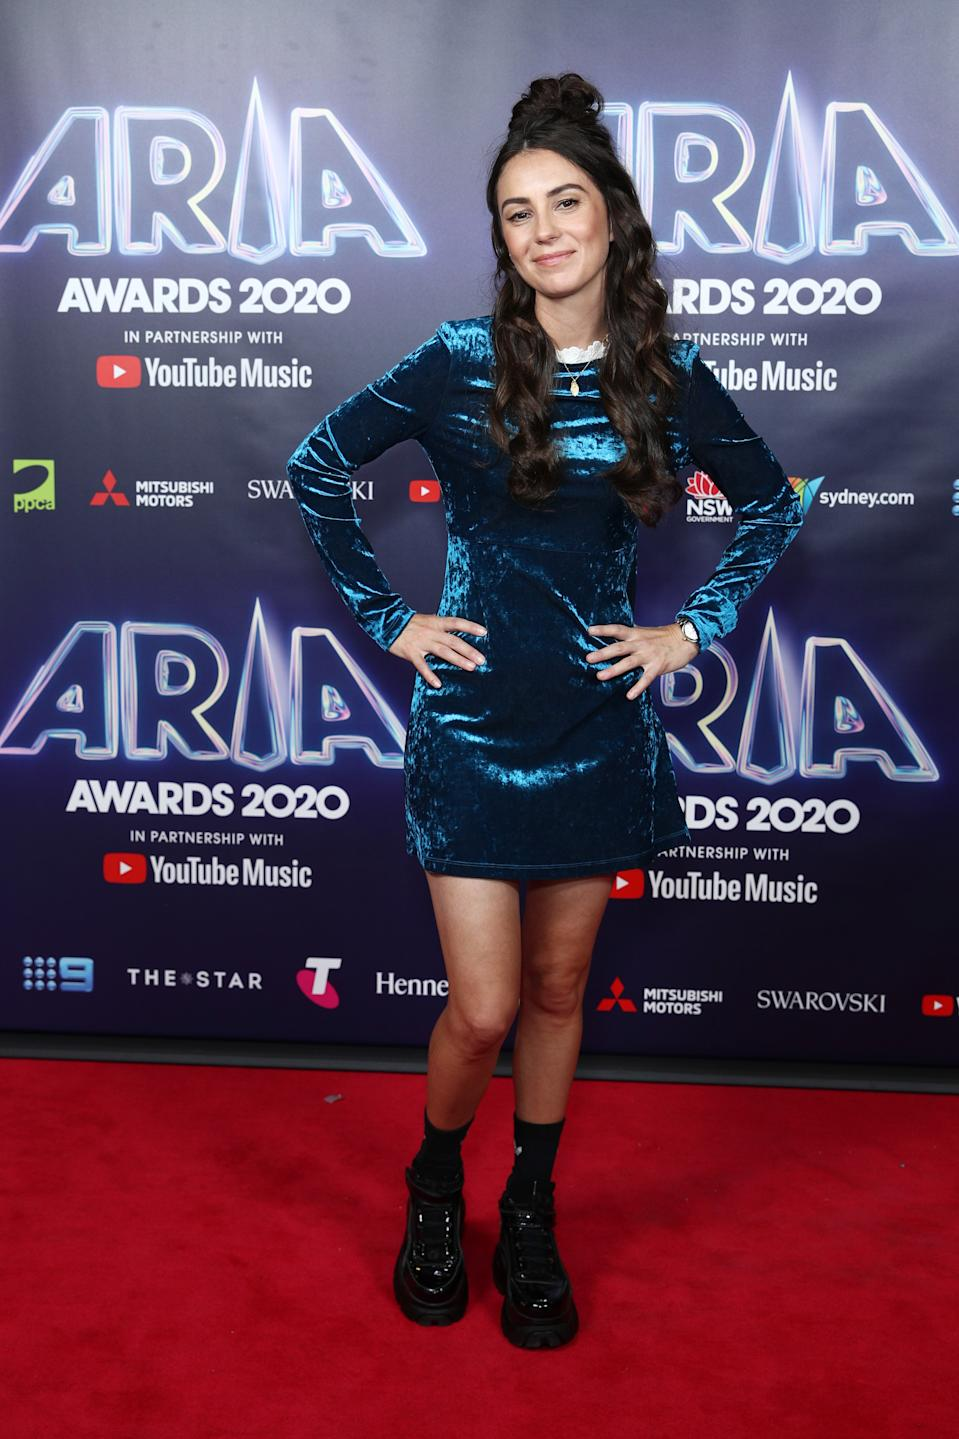 Amy Shark wears a blue crushed velvet mini dress on the red carpet at the 2020 ARIA Awards at The Star on November 24, 2020 in Sydney, Australia.